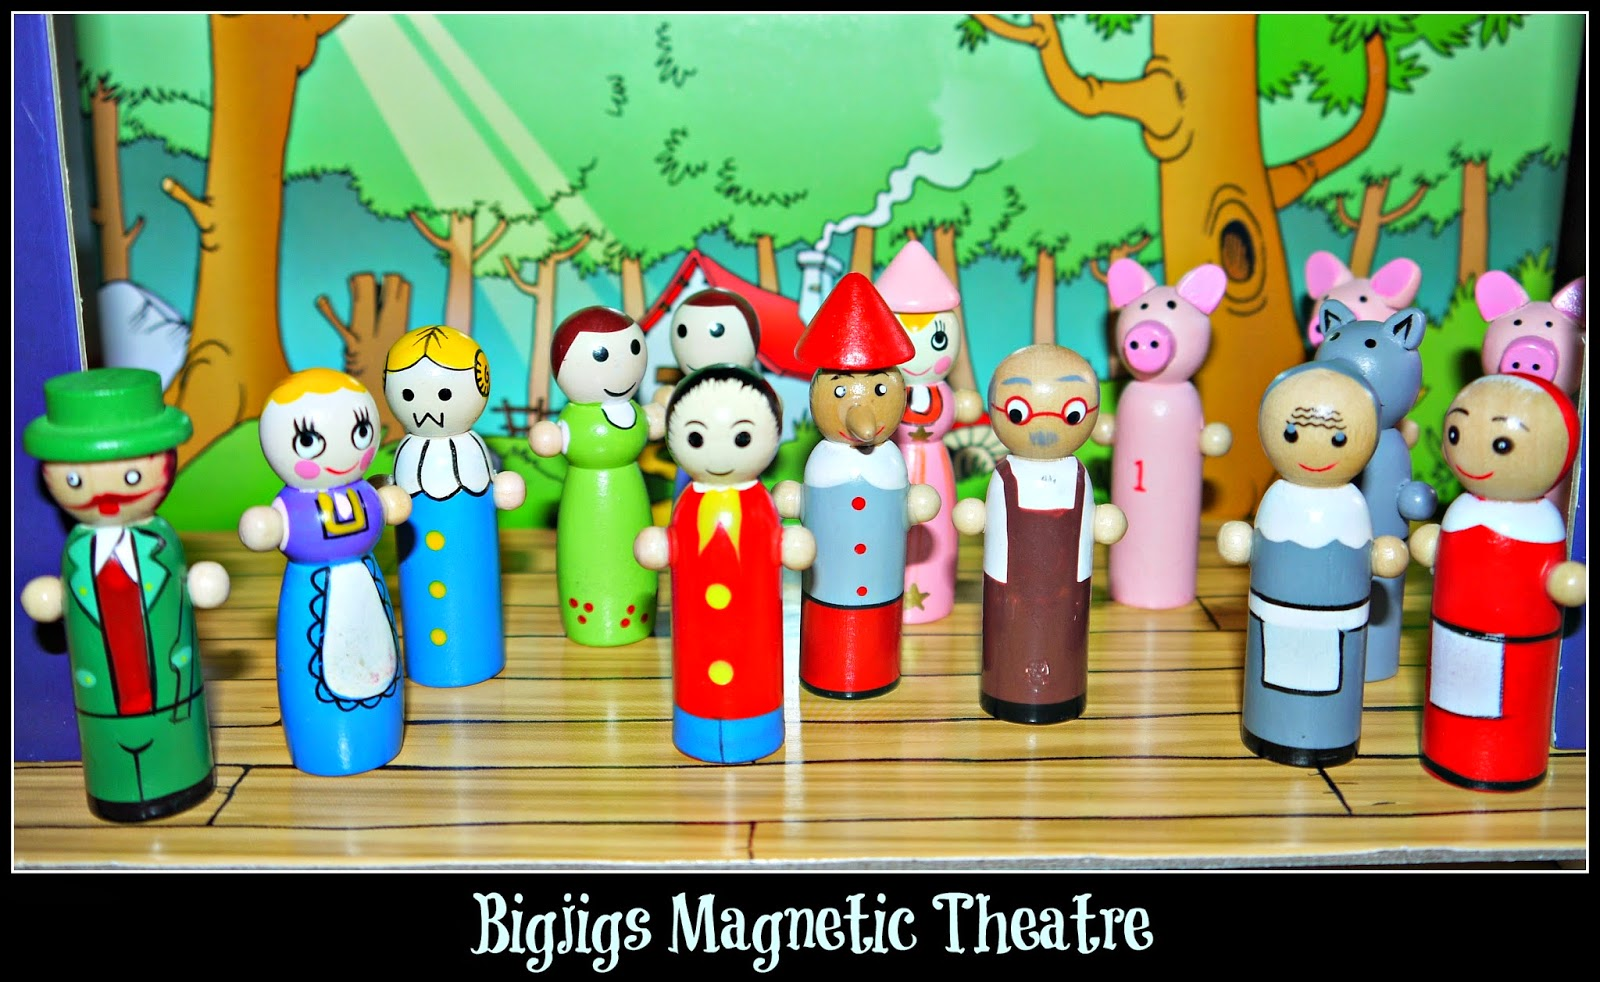 wooden toys, Bigjigs, cast